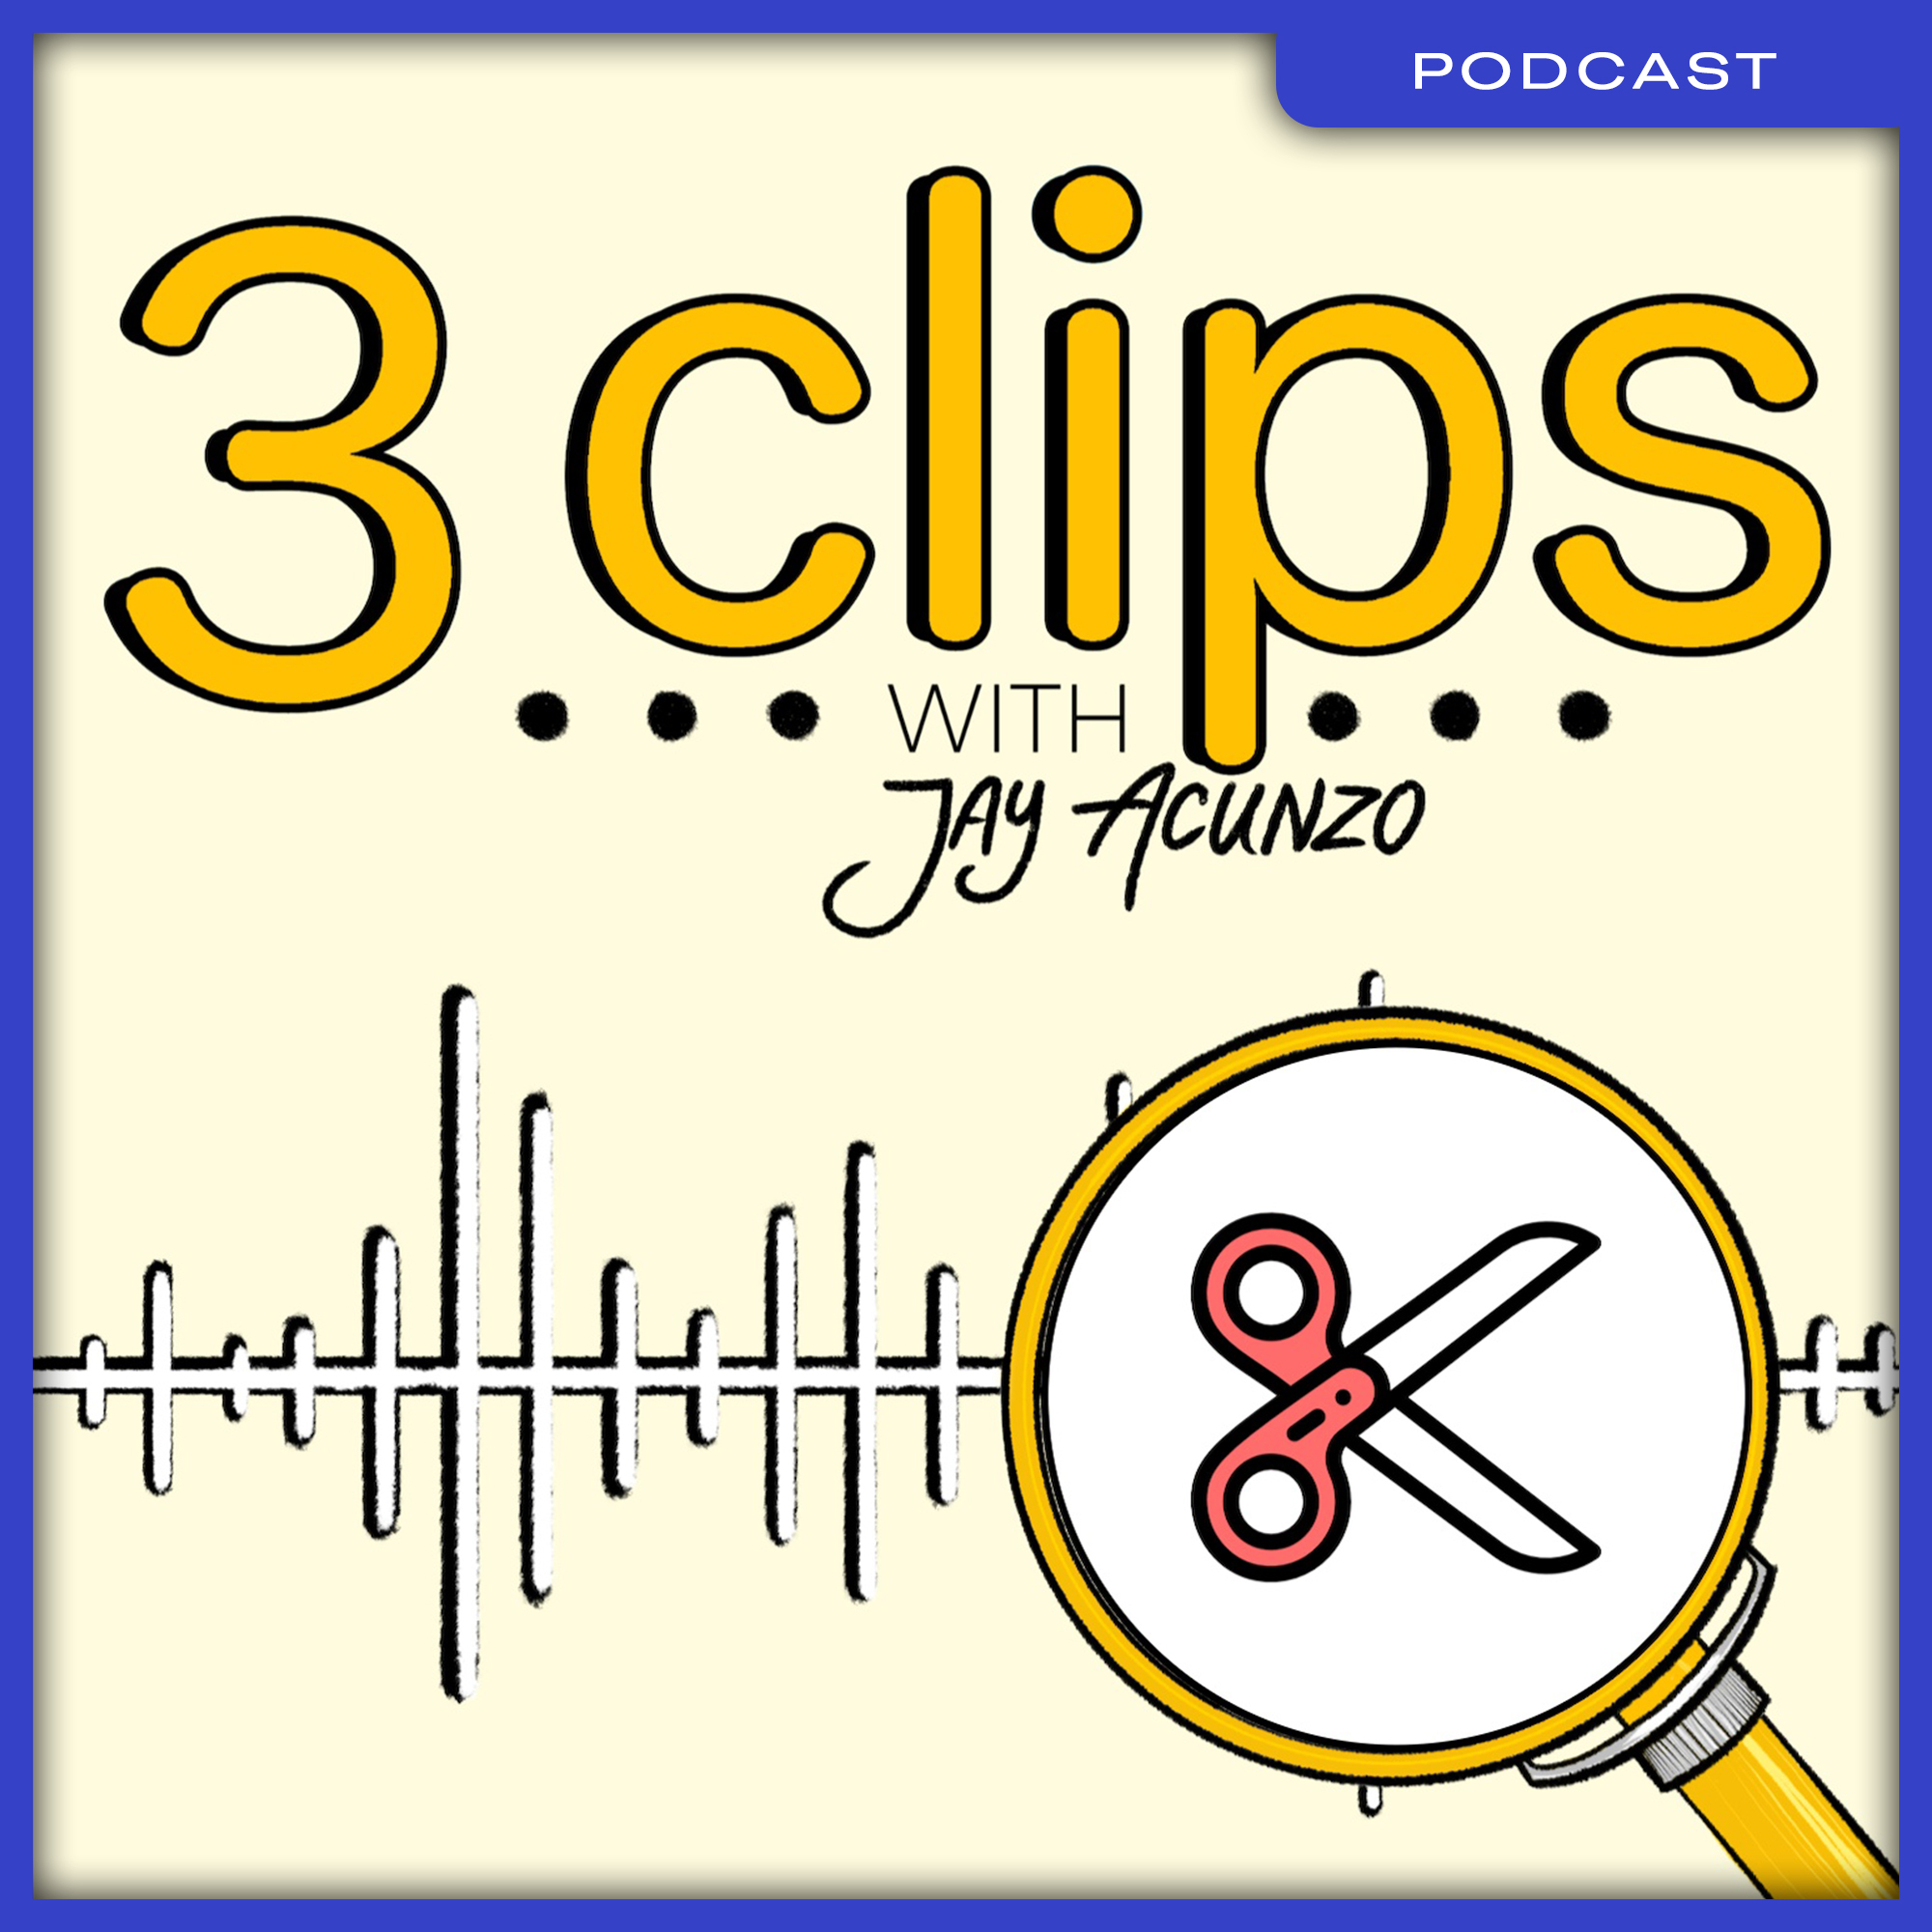 08_Podcast_3Clips